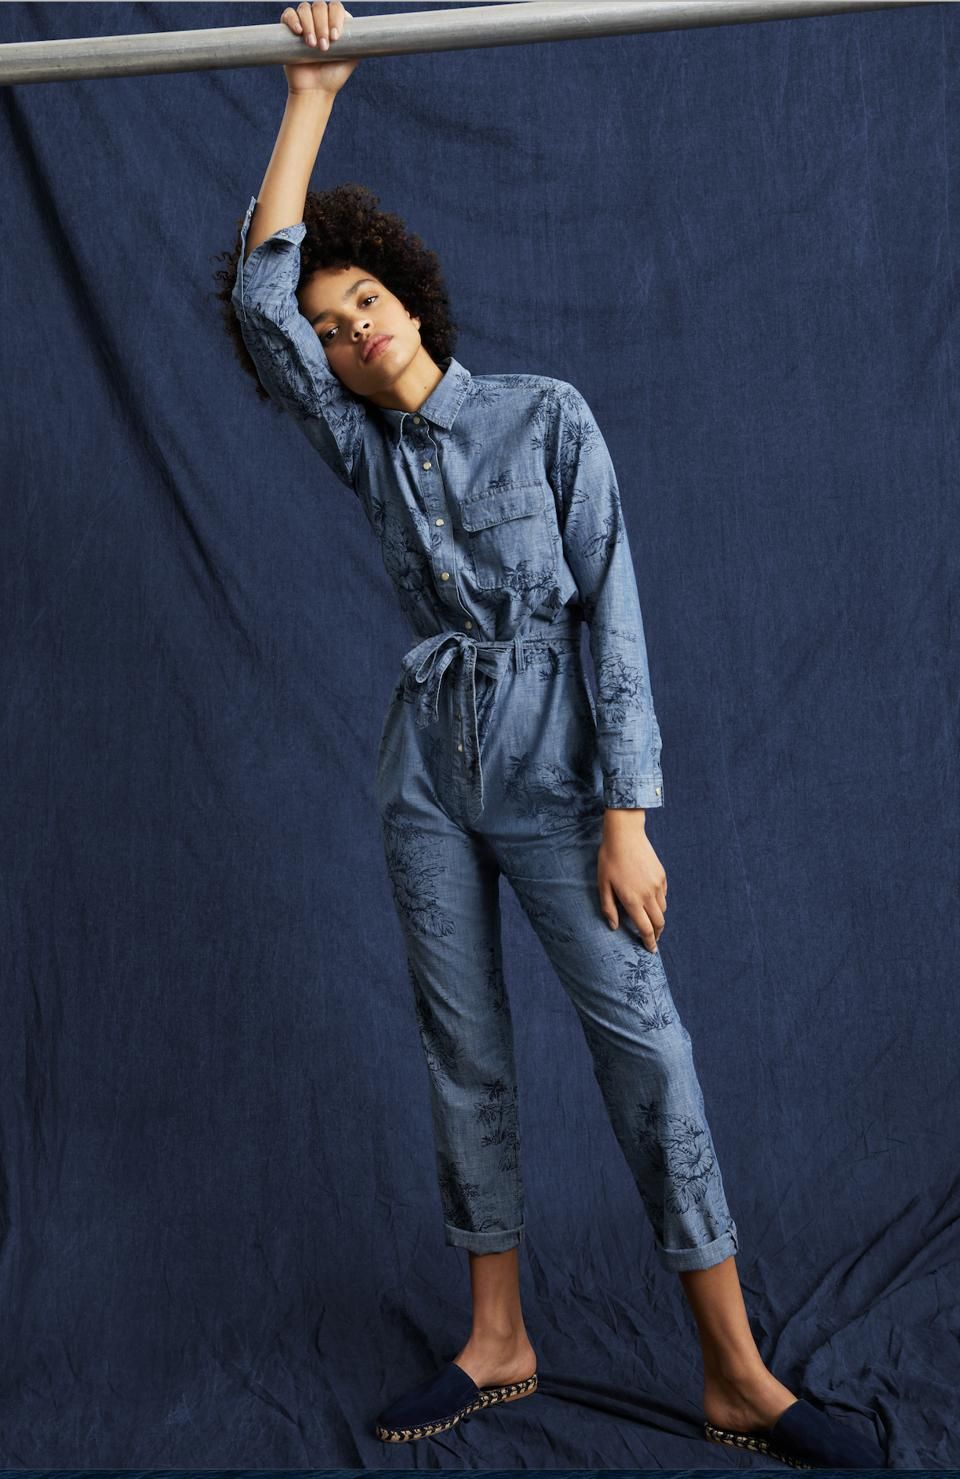 The Print Denim Jumpsuit in Hawaiian floral print boasts a fun yet sophisticated design